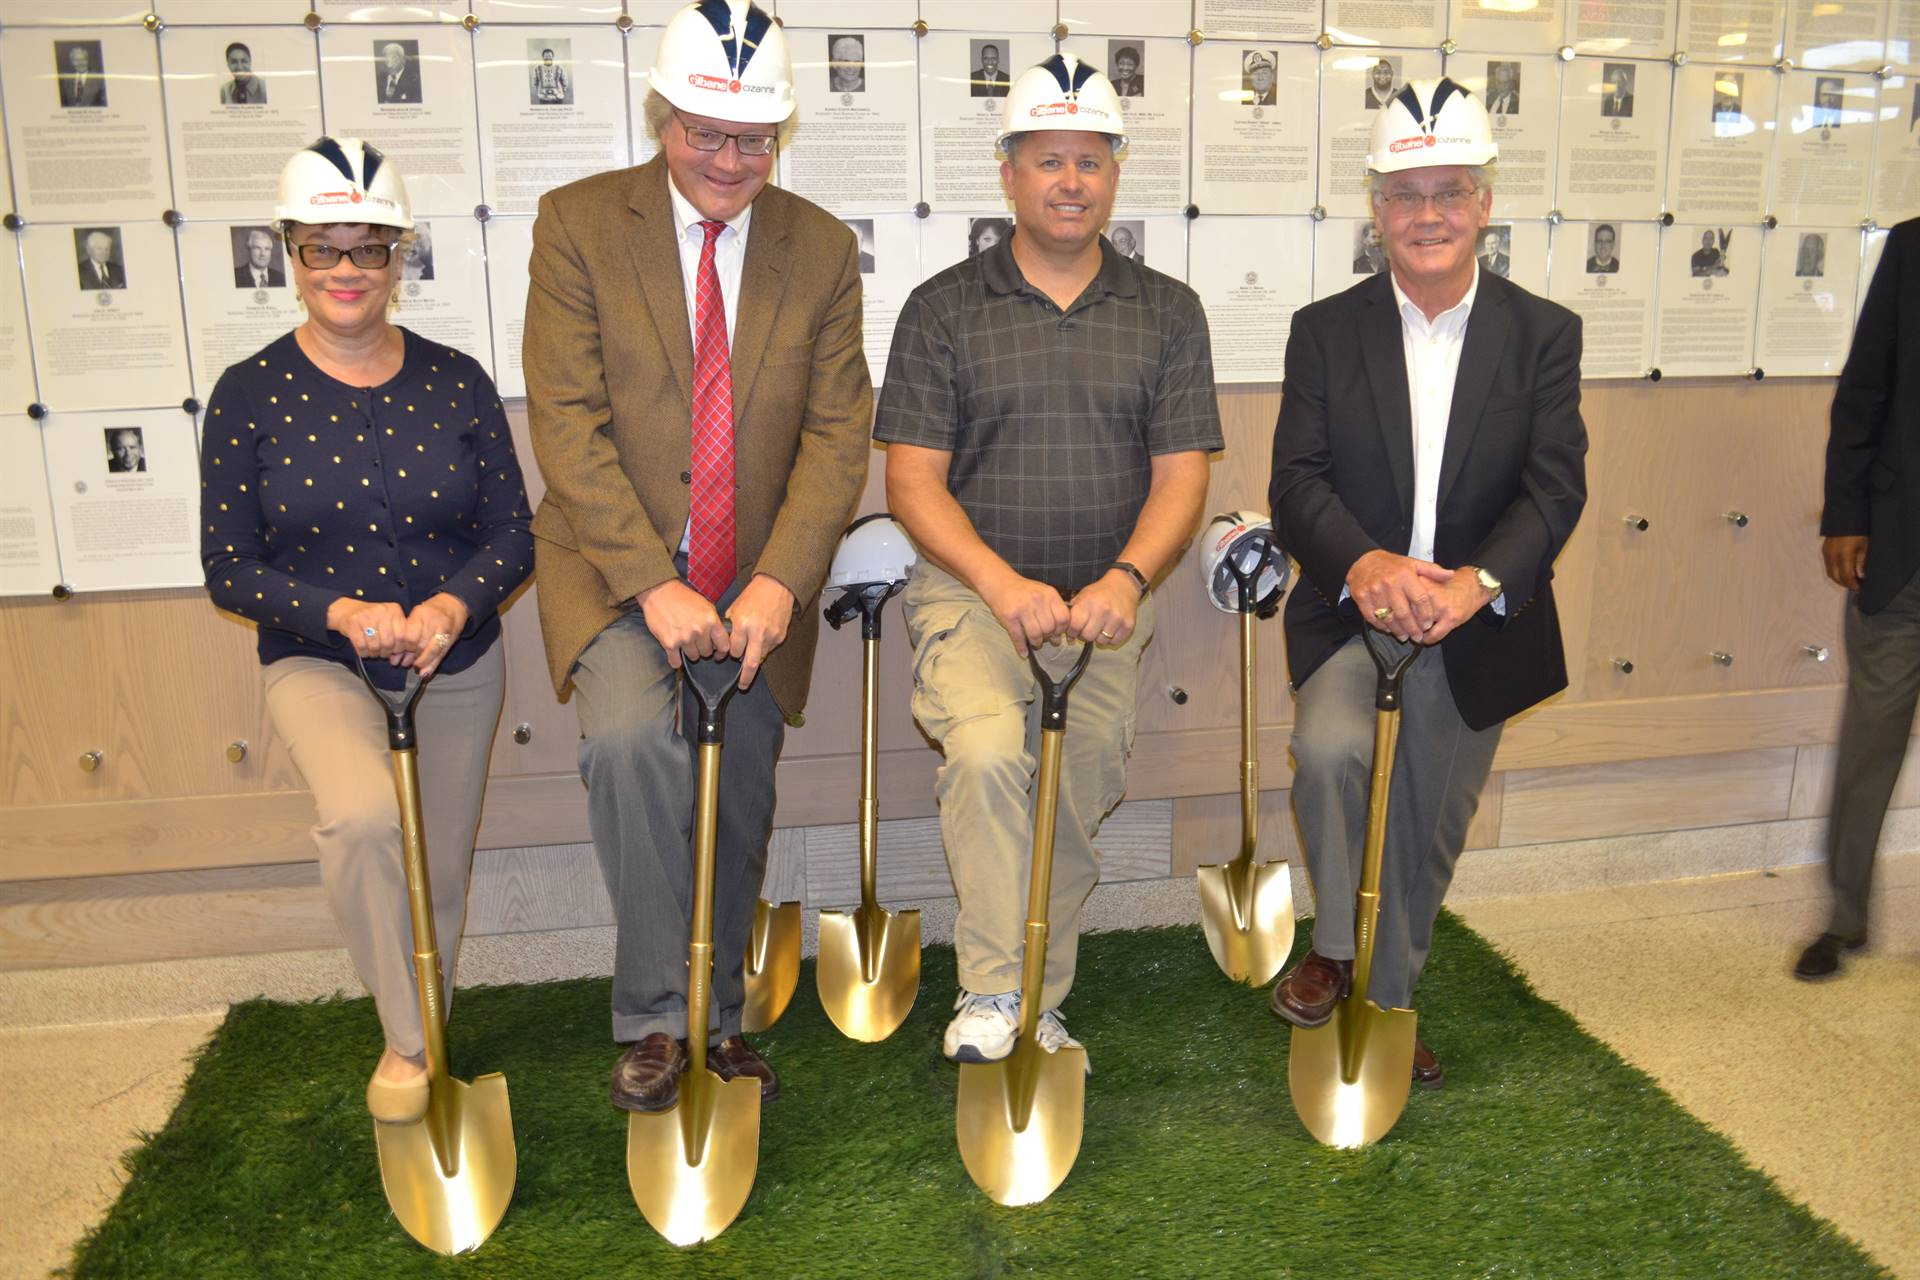 Citizens for Sandusky Public Schools at the Groundbreaking Ceremony